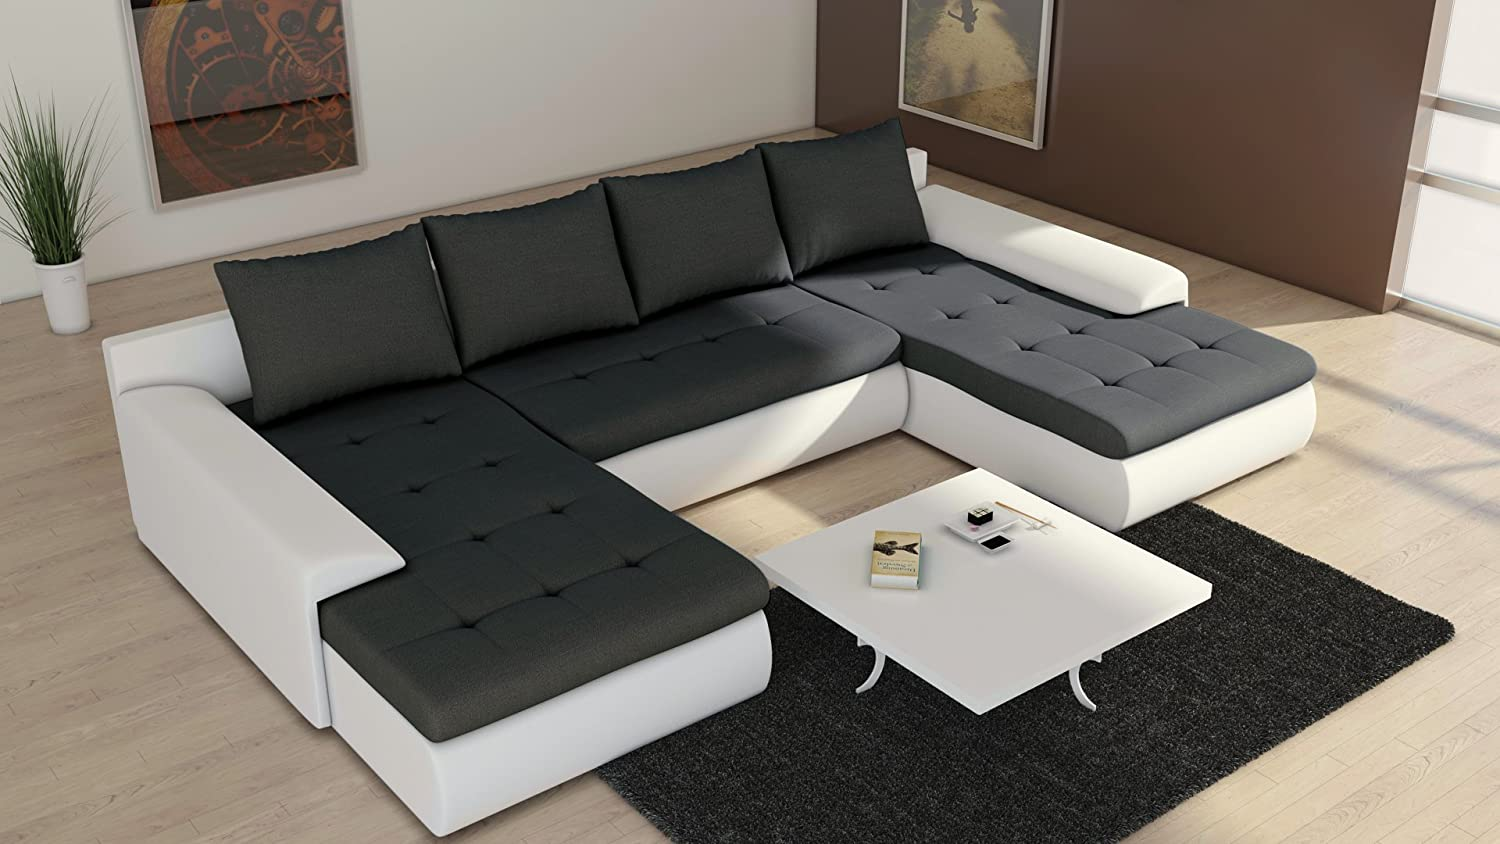 Eckcouch u form  Sofa Couchgarnitur Couch Sofagarnitur FUTURE 2.1 U Polstergarnitur ...